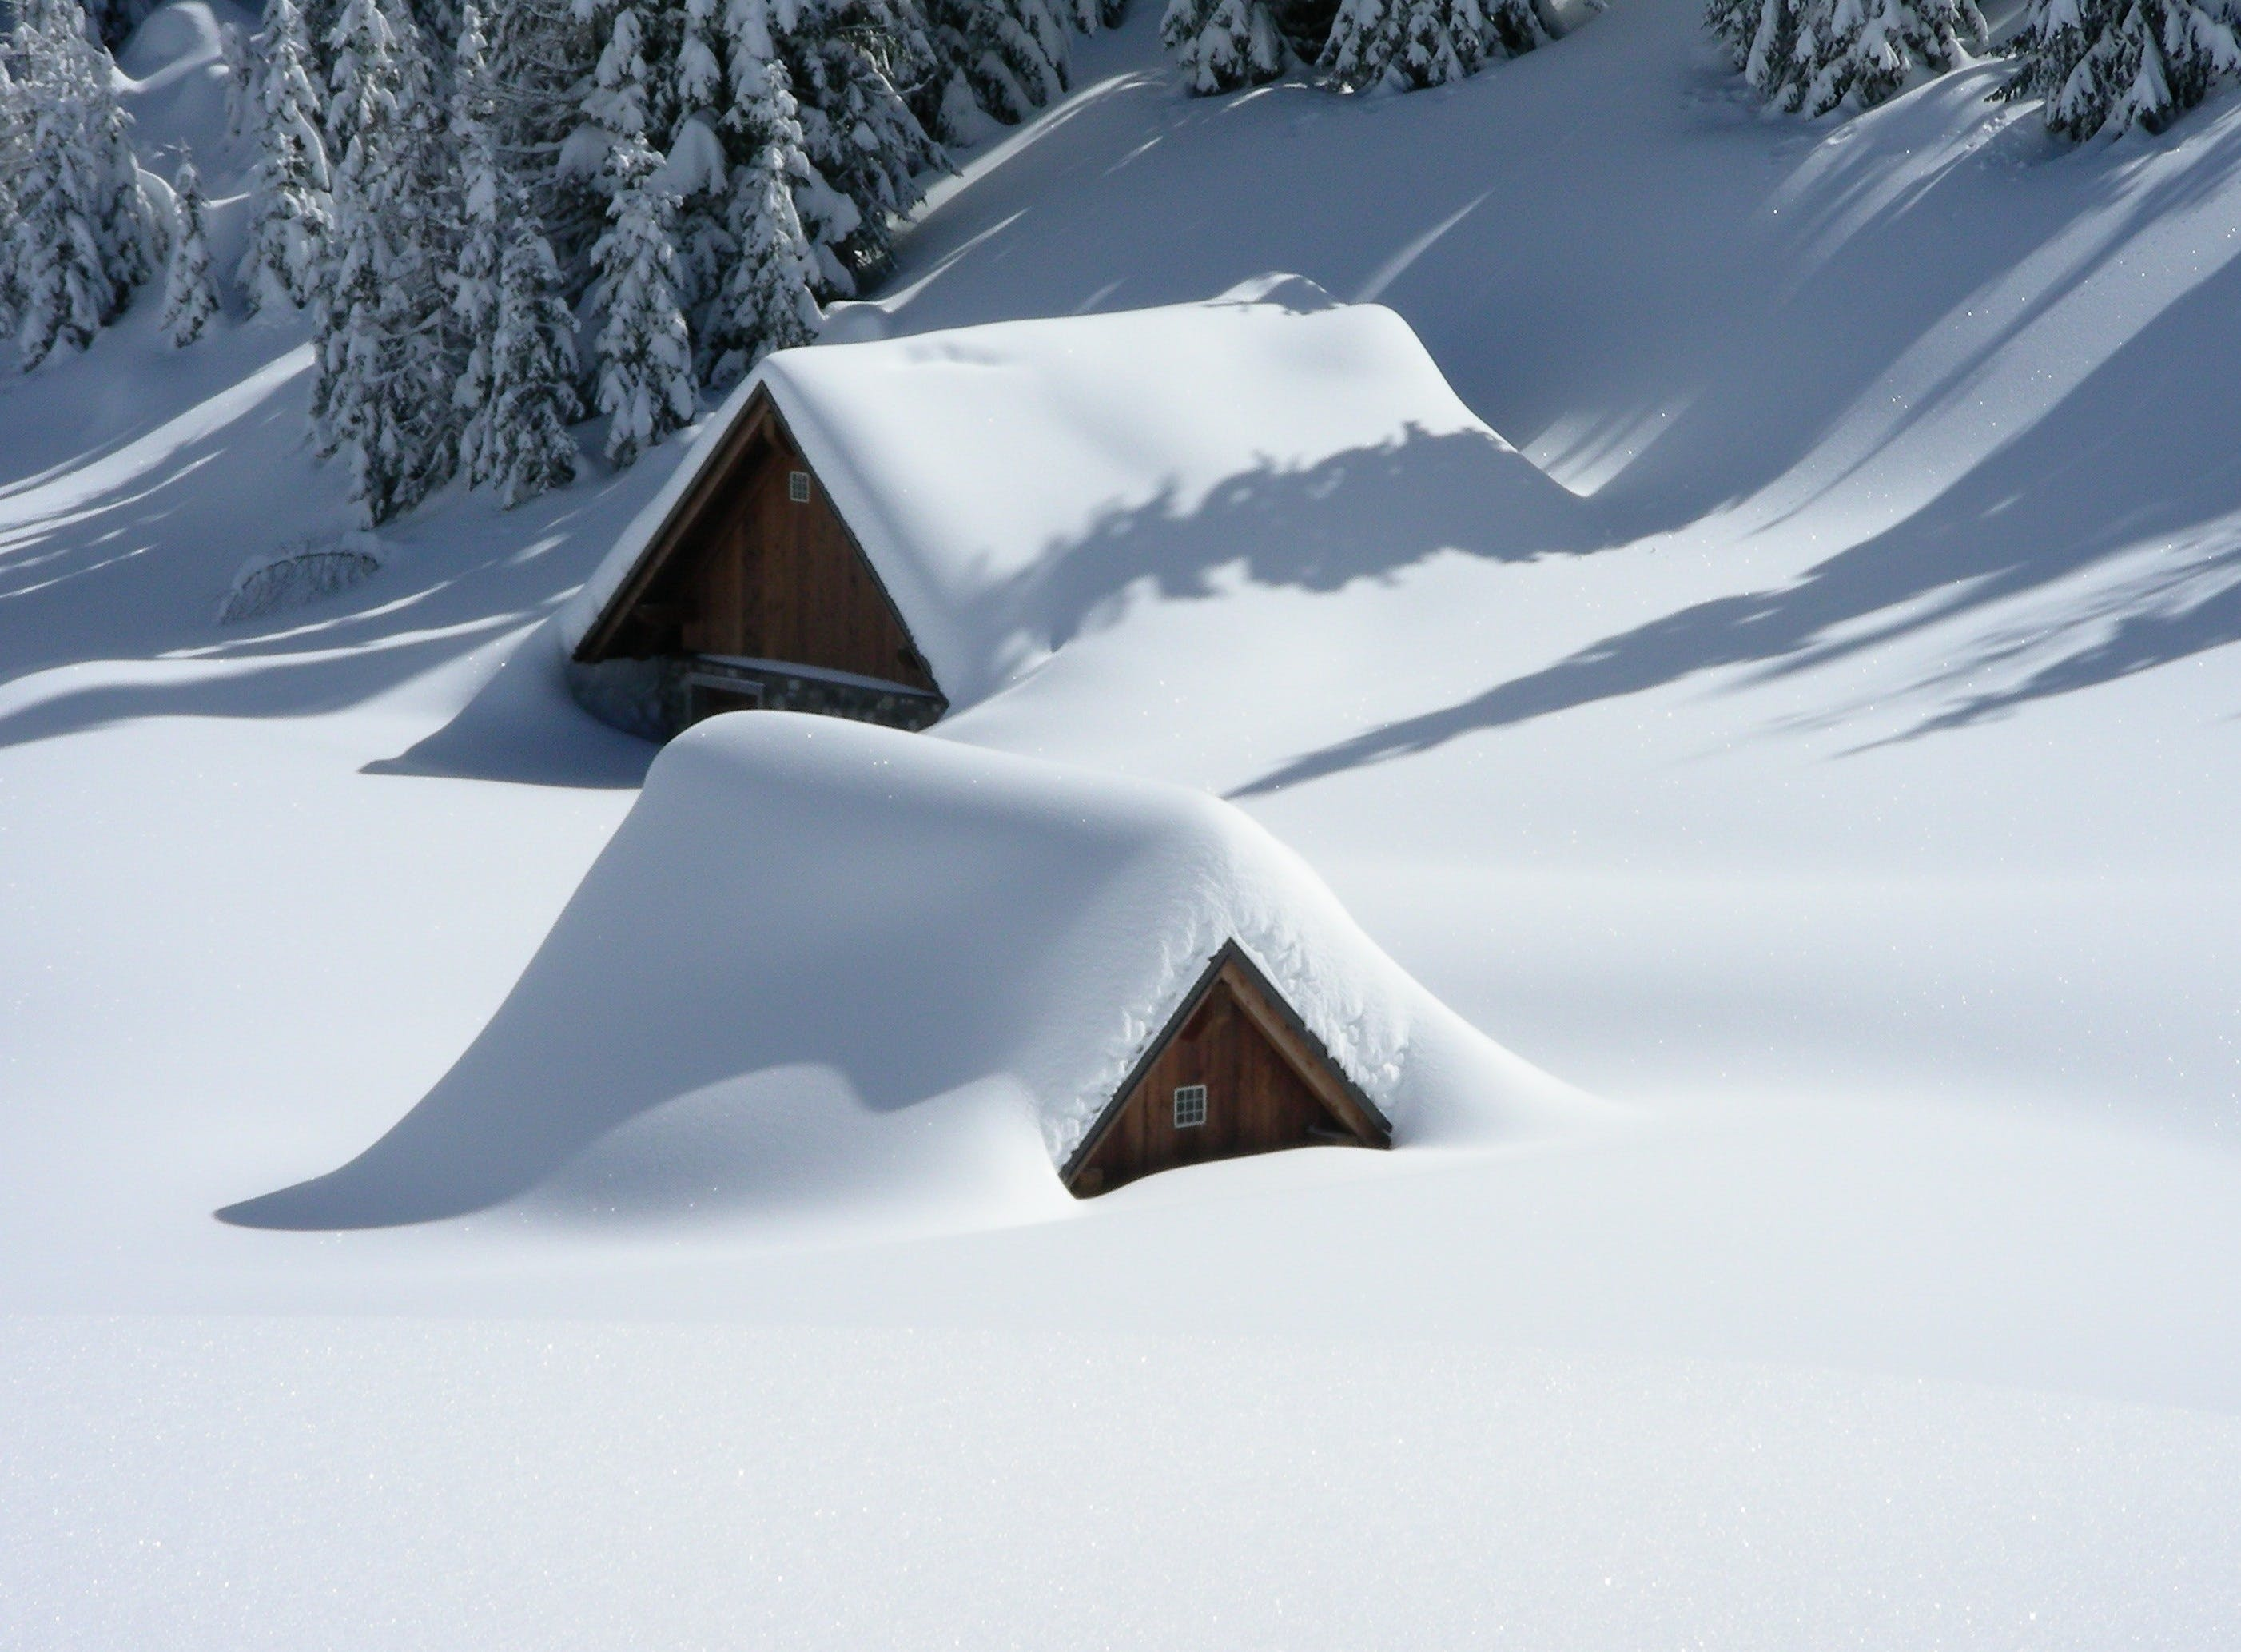 Brown Wooden House Covered With Snow Near Pine Trees